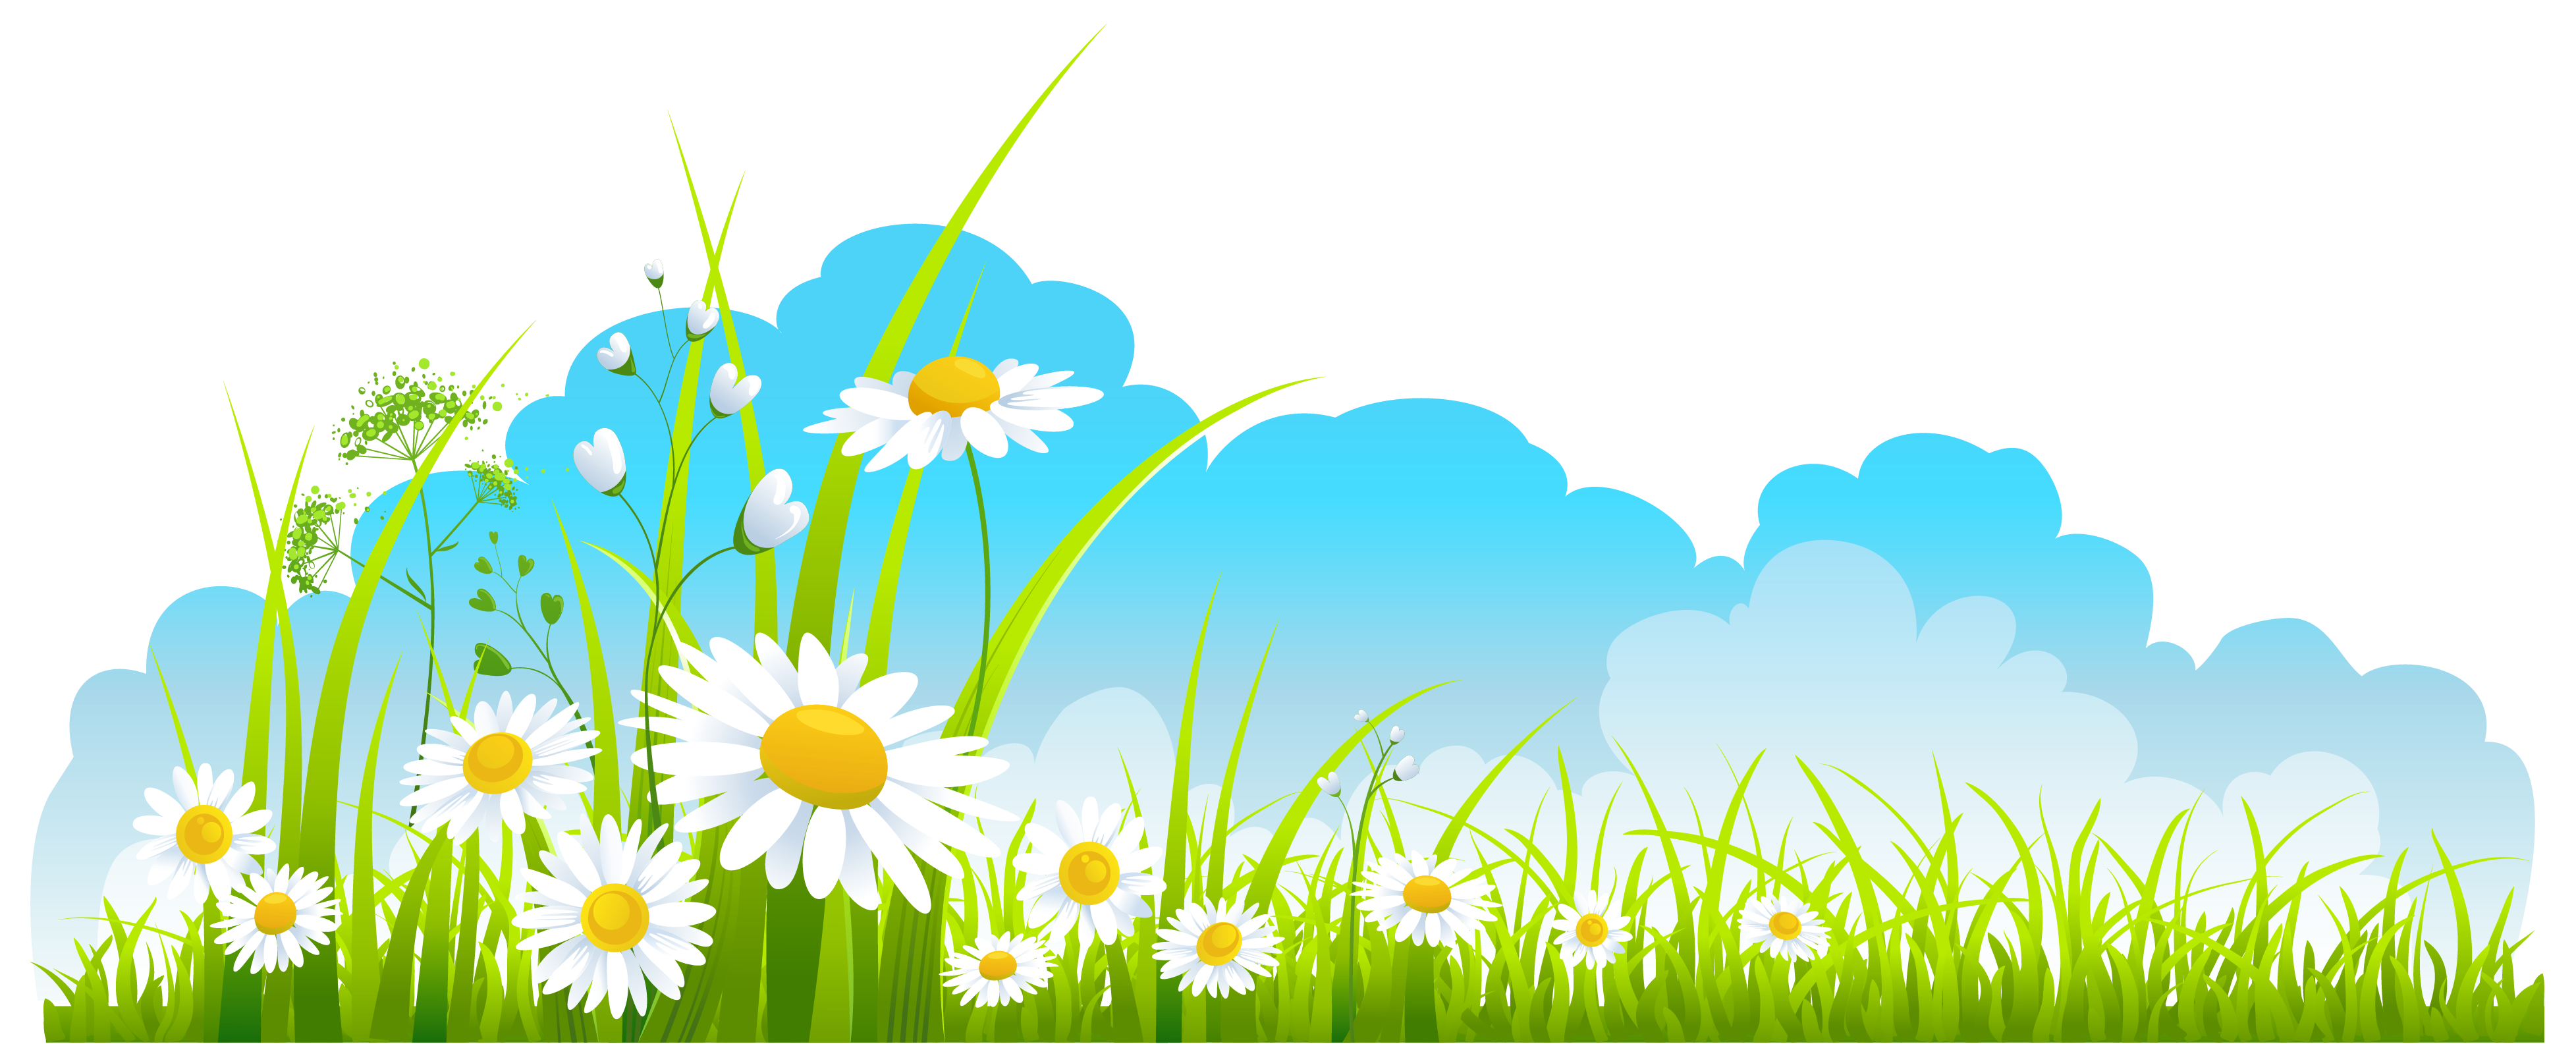 Decor sky grass and. Nature clipart spring png royalty free library